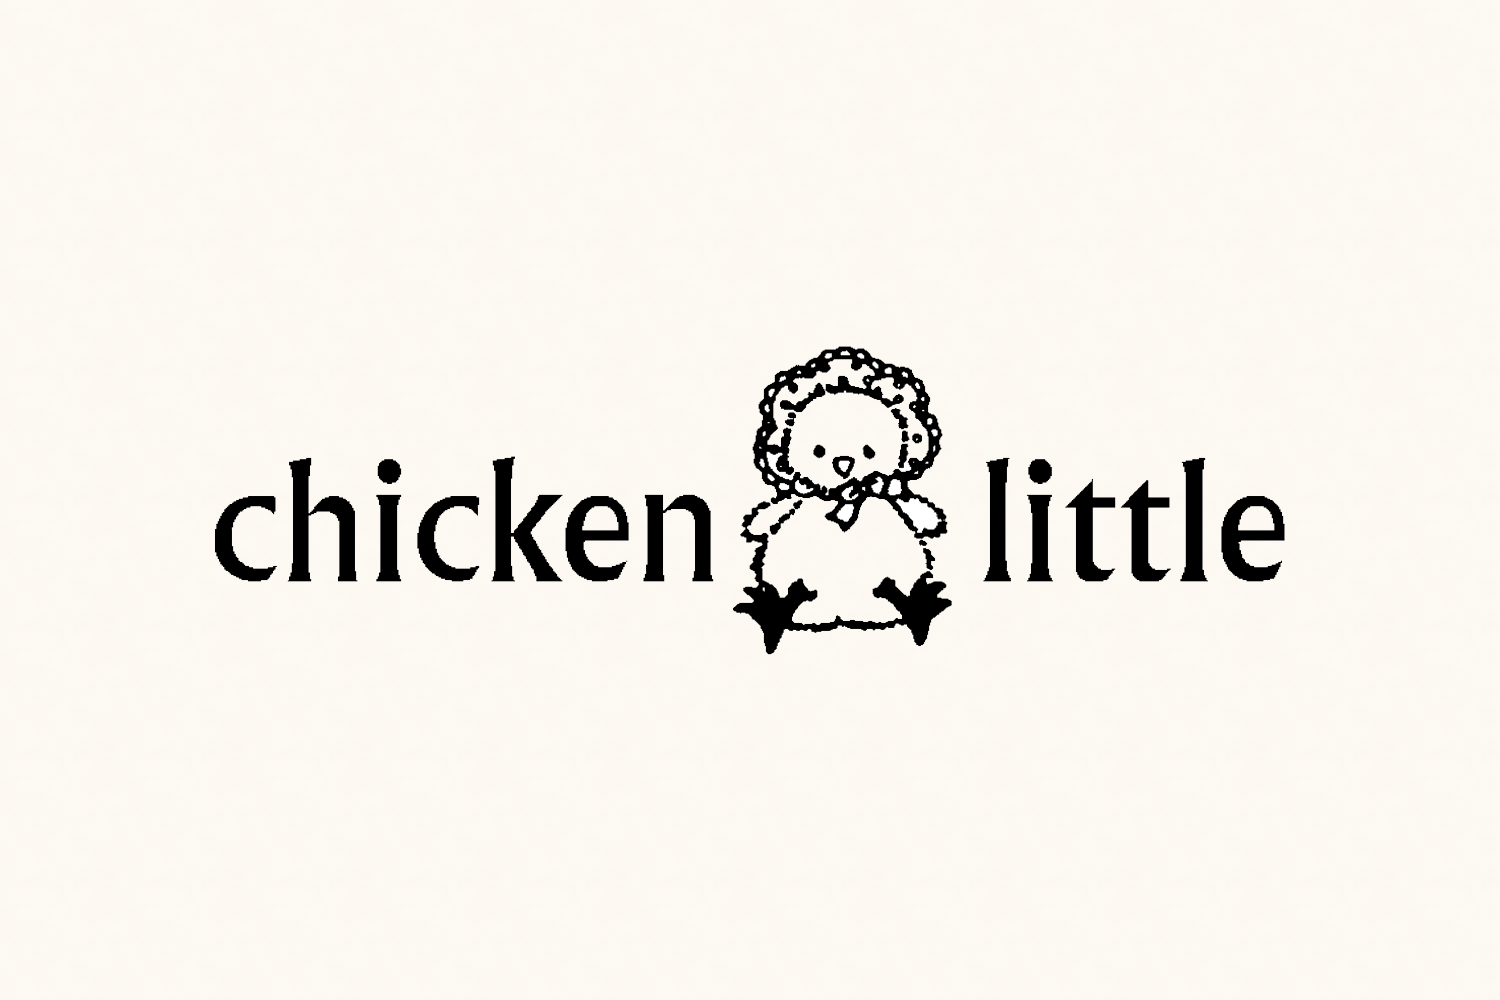 Chicken Little Childrens' Store